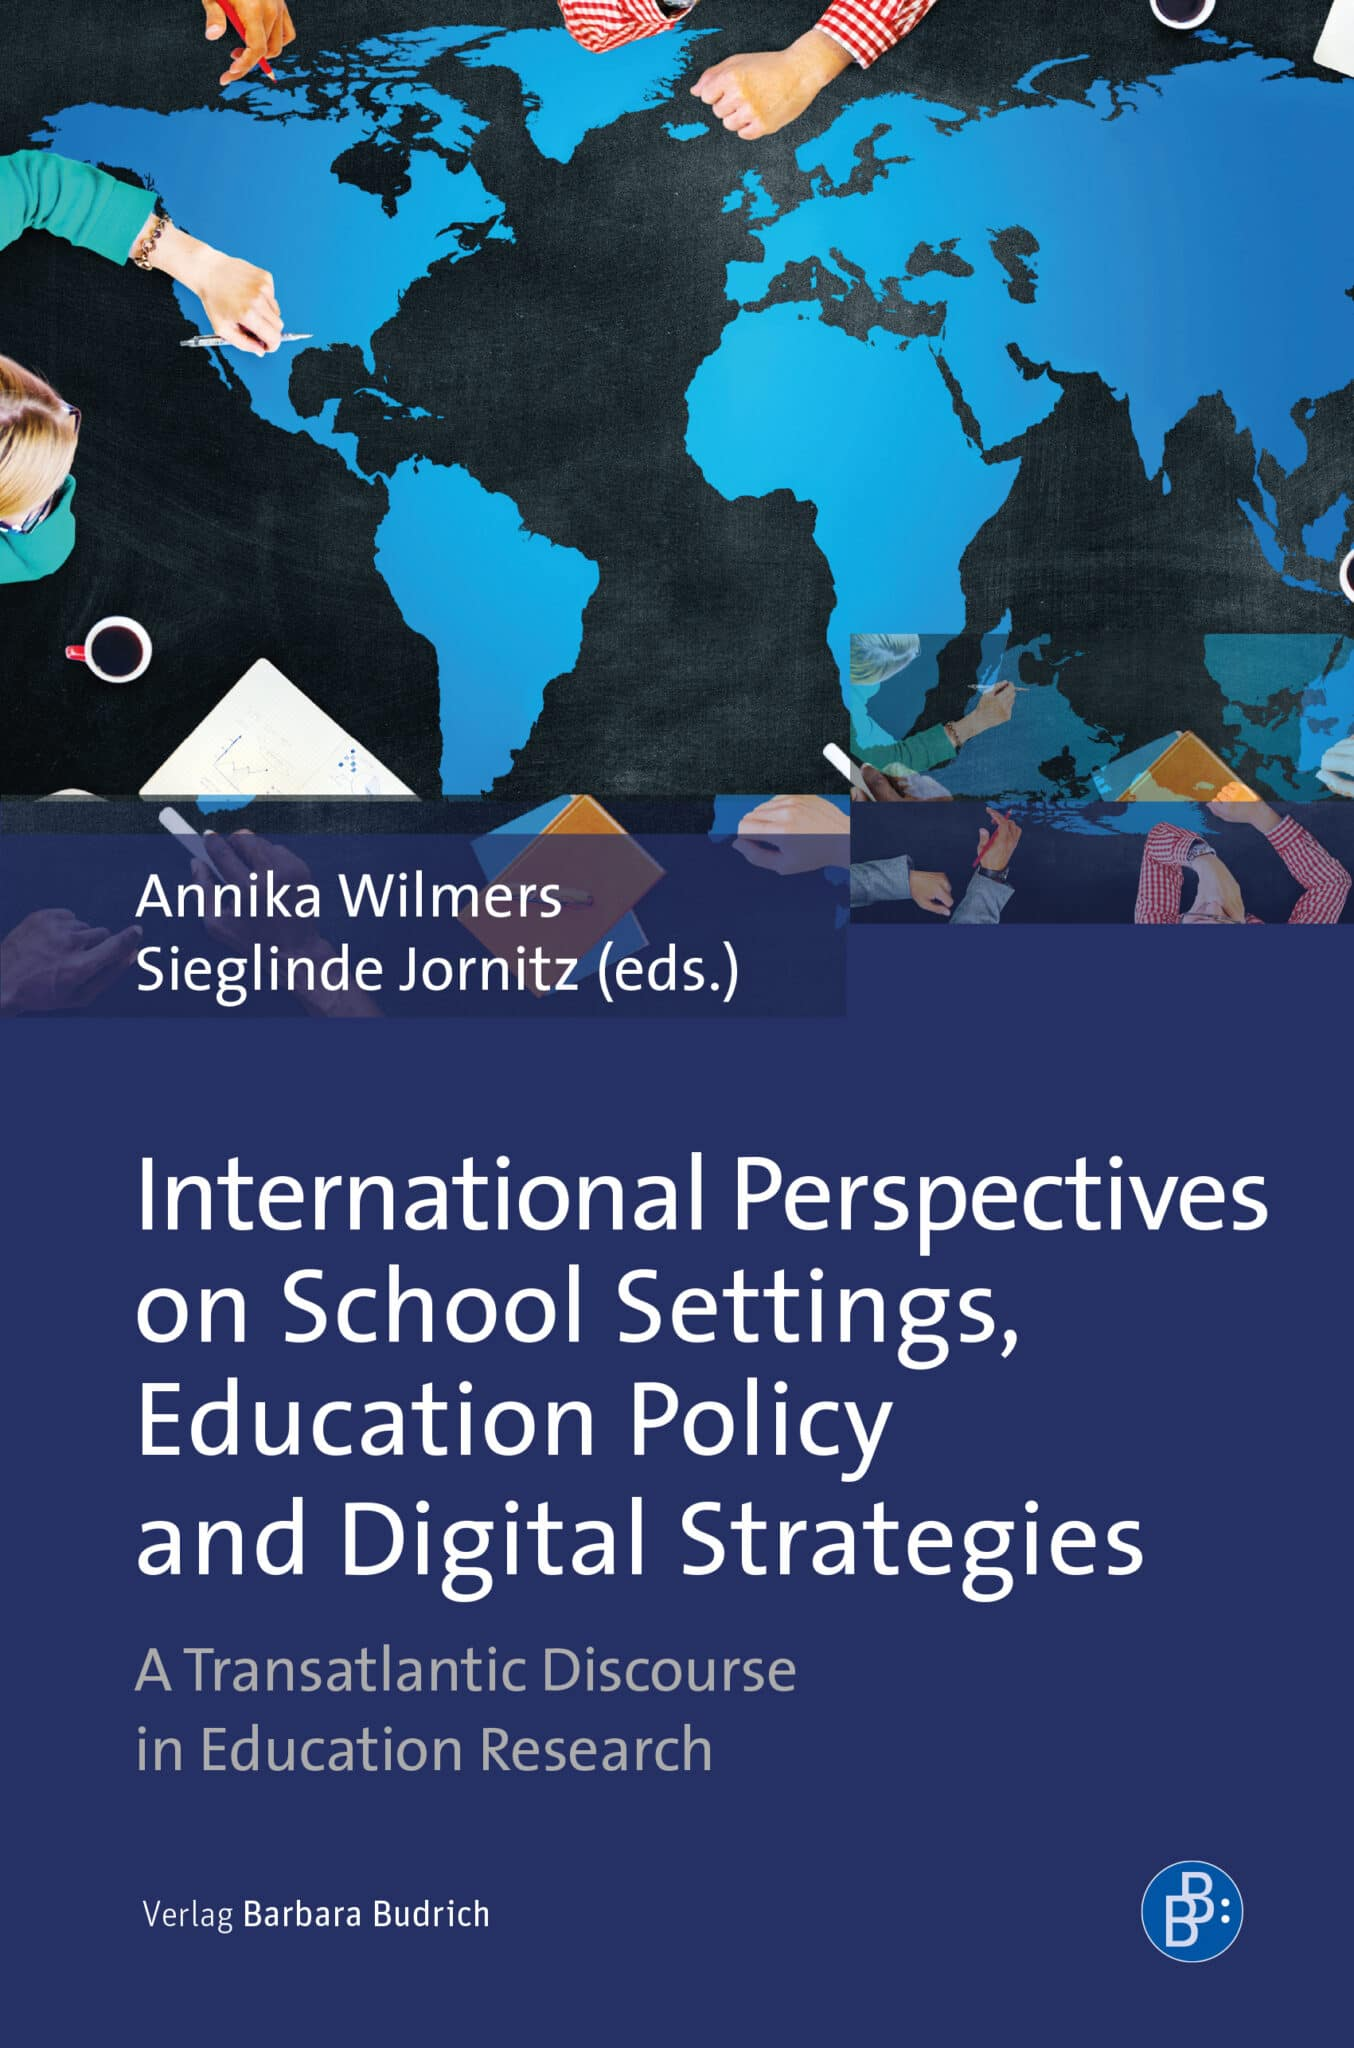 Jornitz/Wilmers (eds.) : International Perspectives on School Settings, Education Pollicy and Digital Strategies. A Transatlantic Discourse in Education Research. ISBN: 978-3-8474-2299-0. Verlag Barbara Budrich.